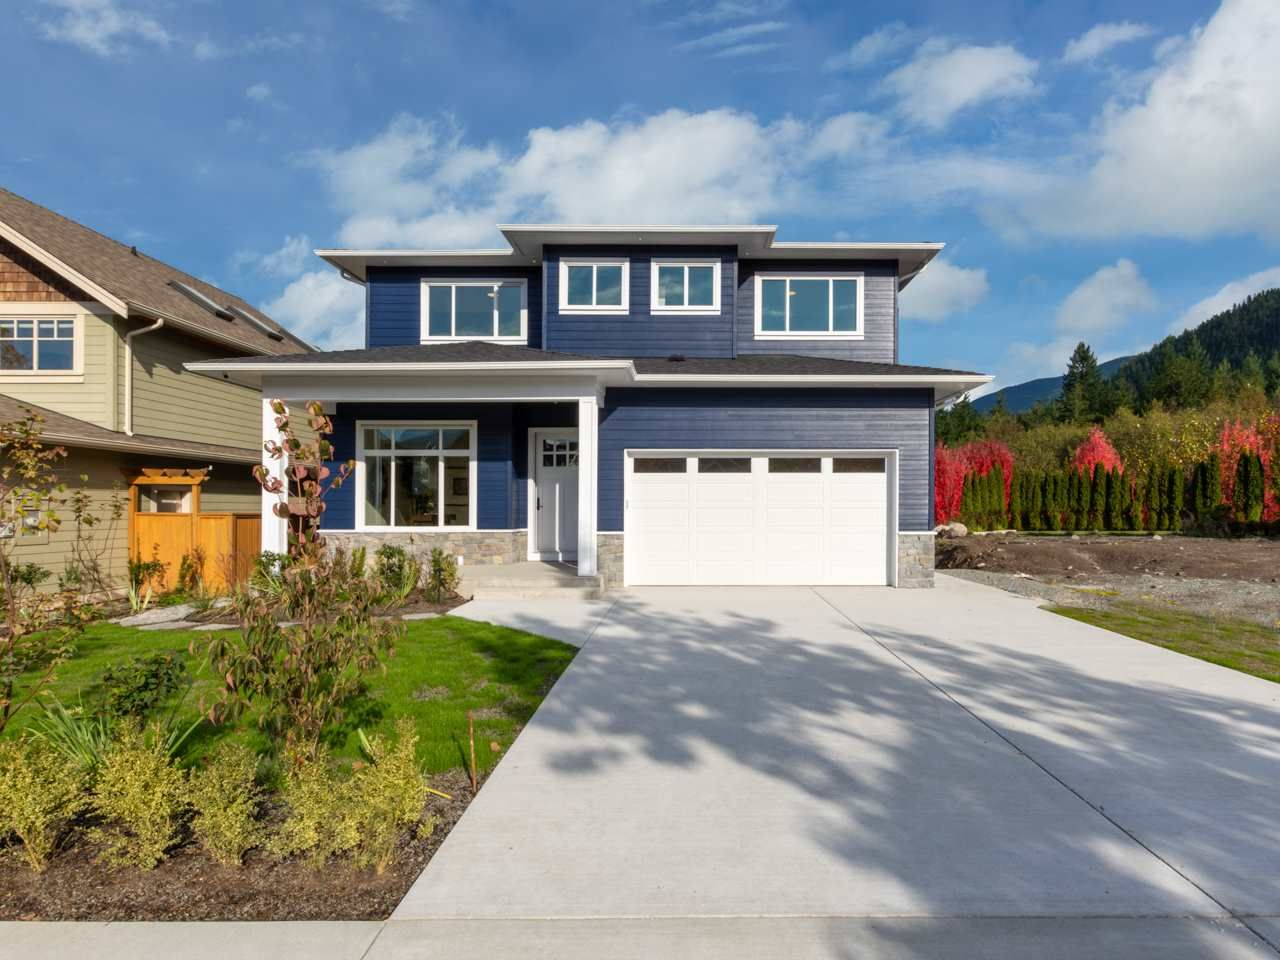 """Main Photo: 40895 THE CRESCENT in Squamish: University Highlands House for sale in """"UNIVERSITY HEIGHTS"""" : MLS®# R2467442"""